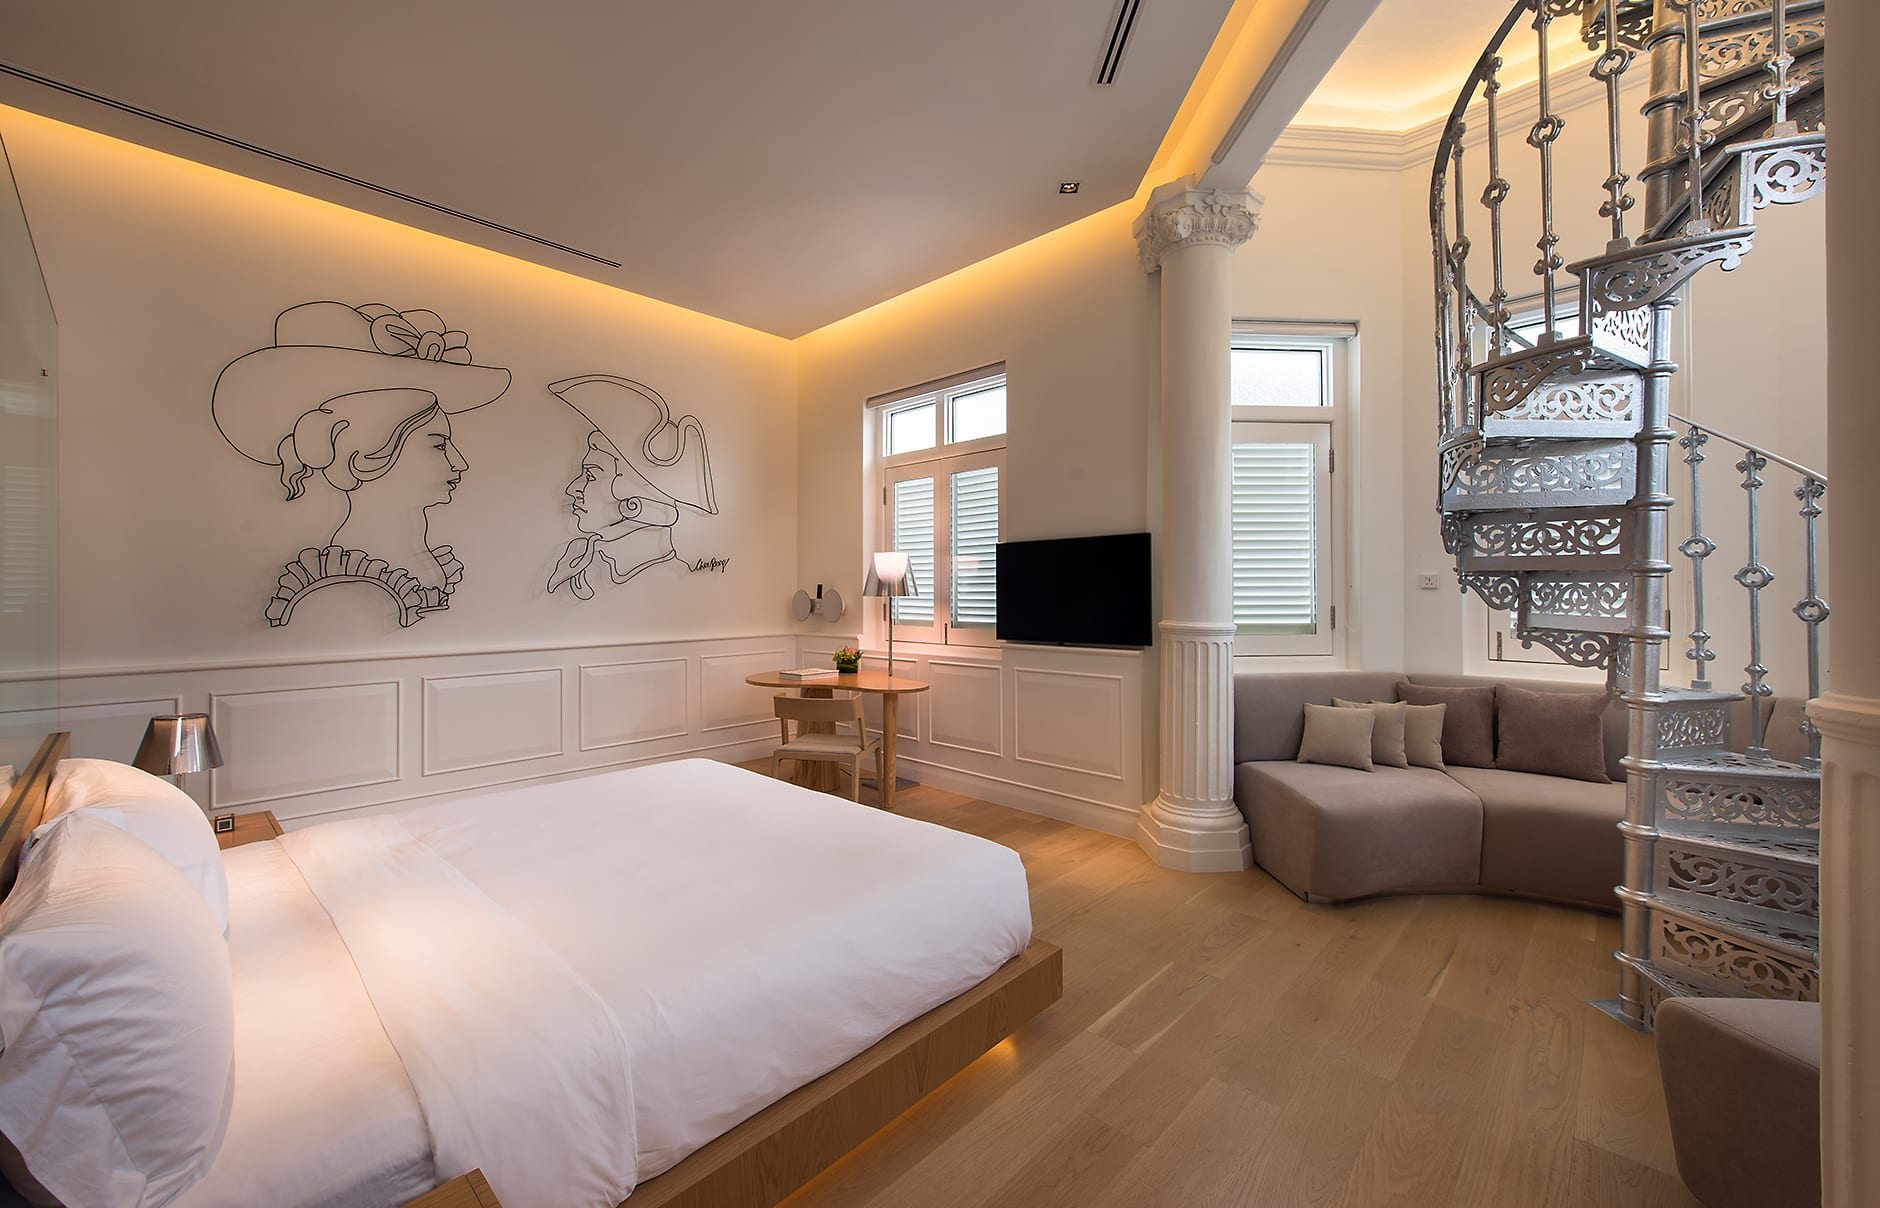 Room 4. Macalister Mansion, Georgetown, Penang, Malaysia. © Macalister Mansion